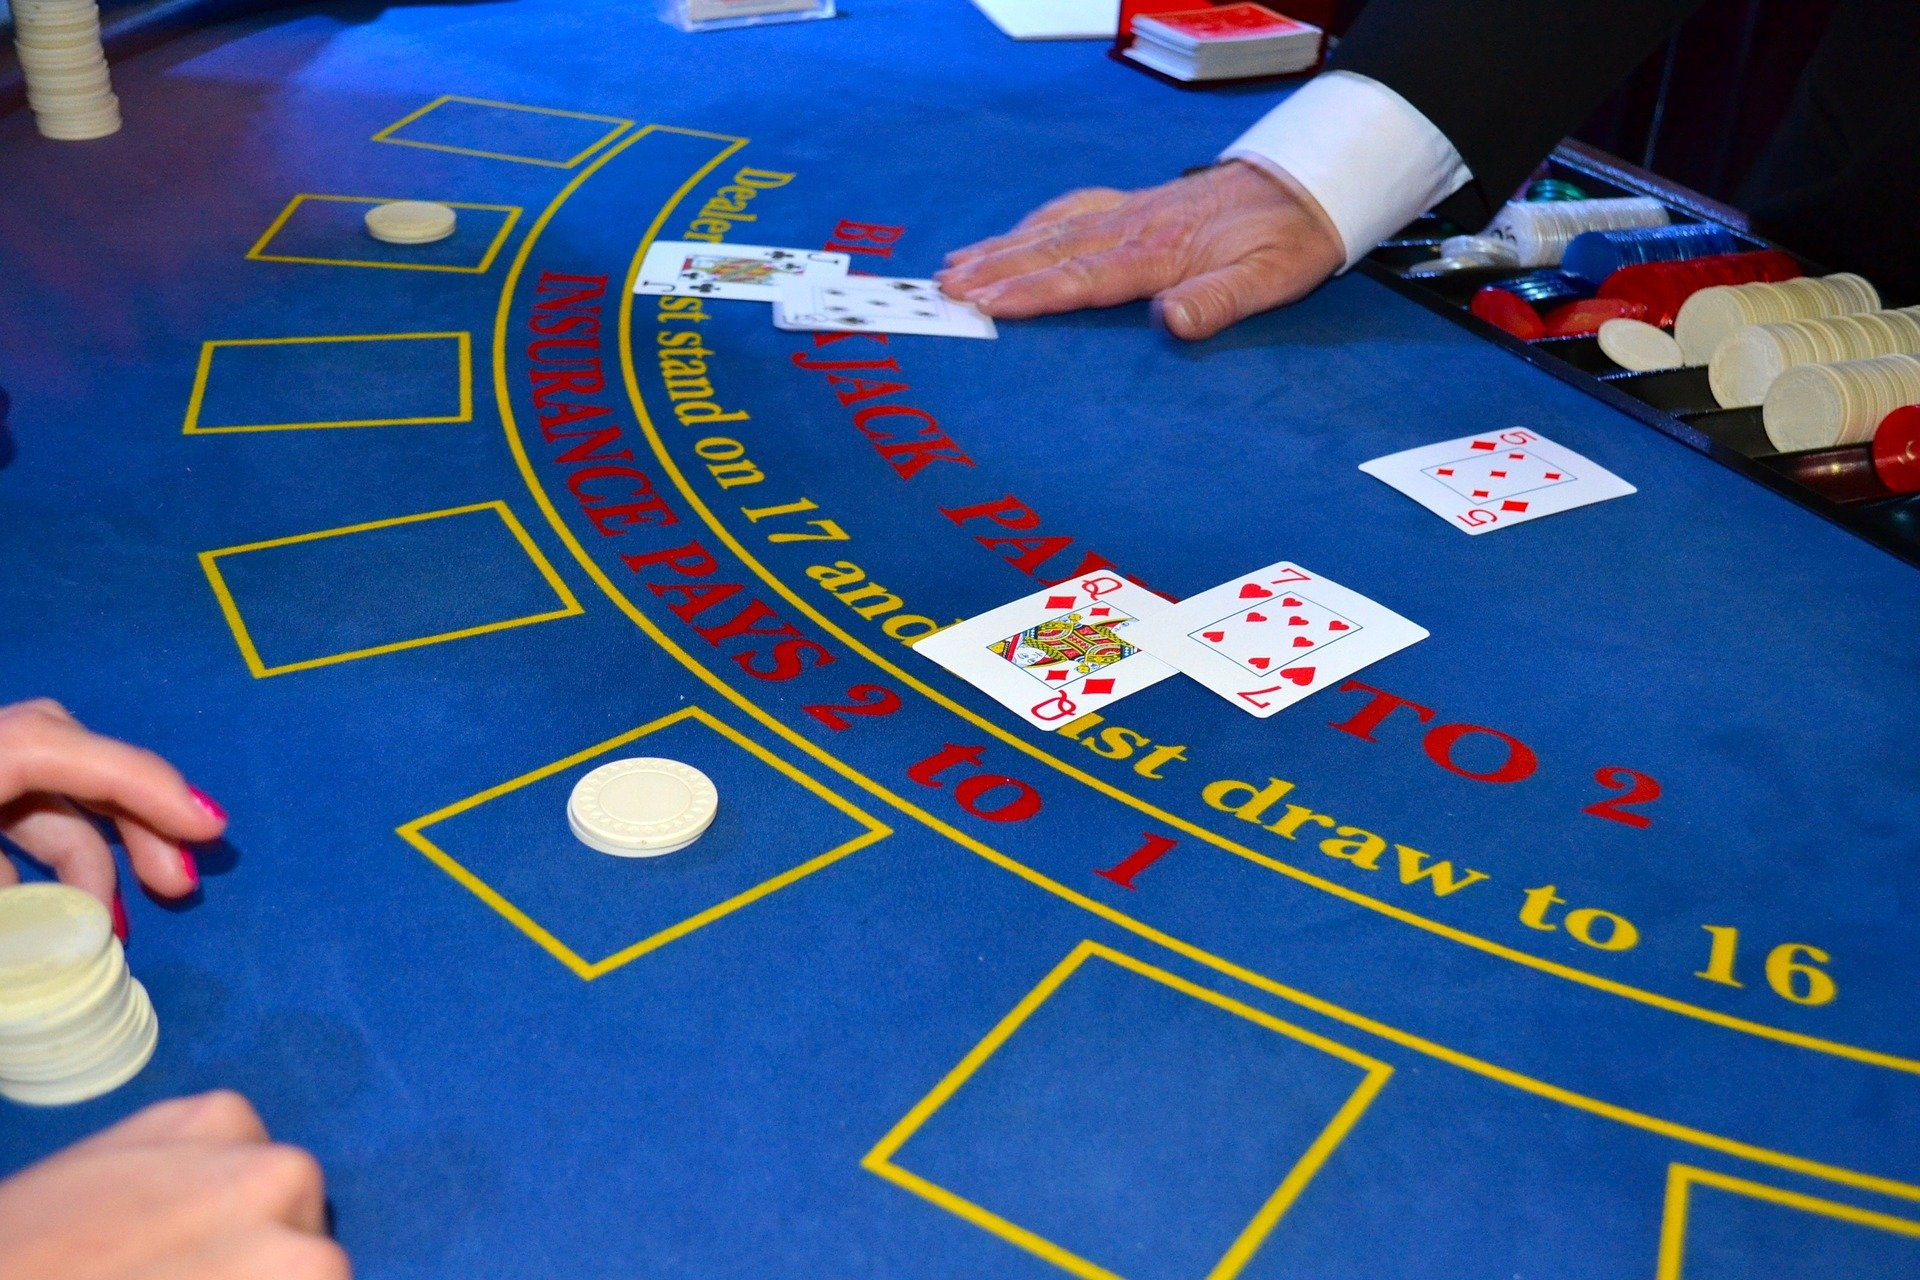 You can play and win a game of blackjack with ease